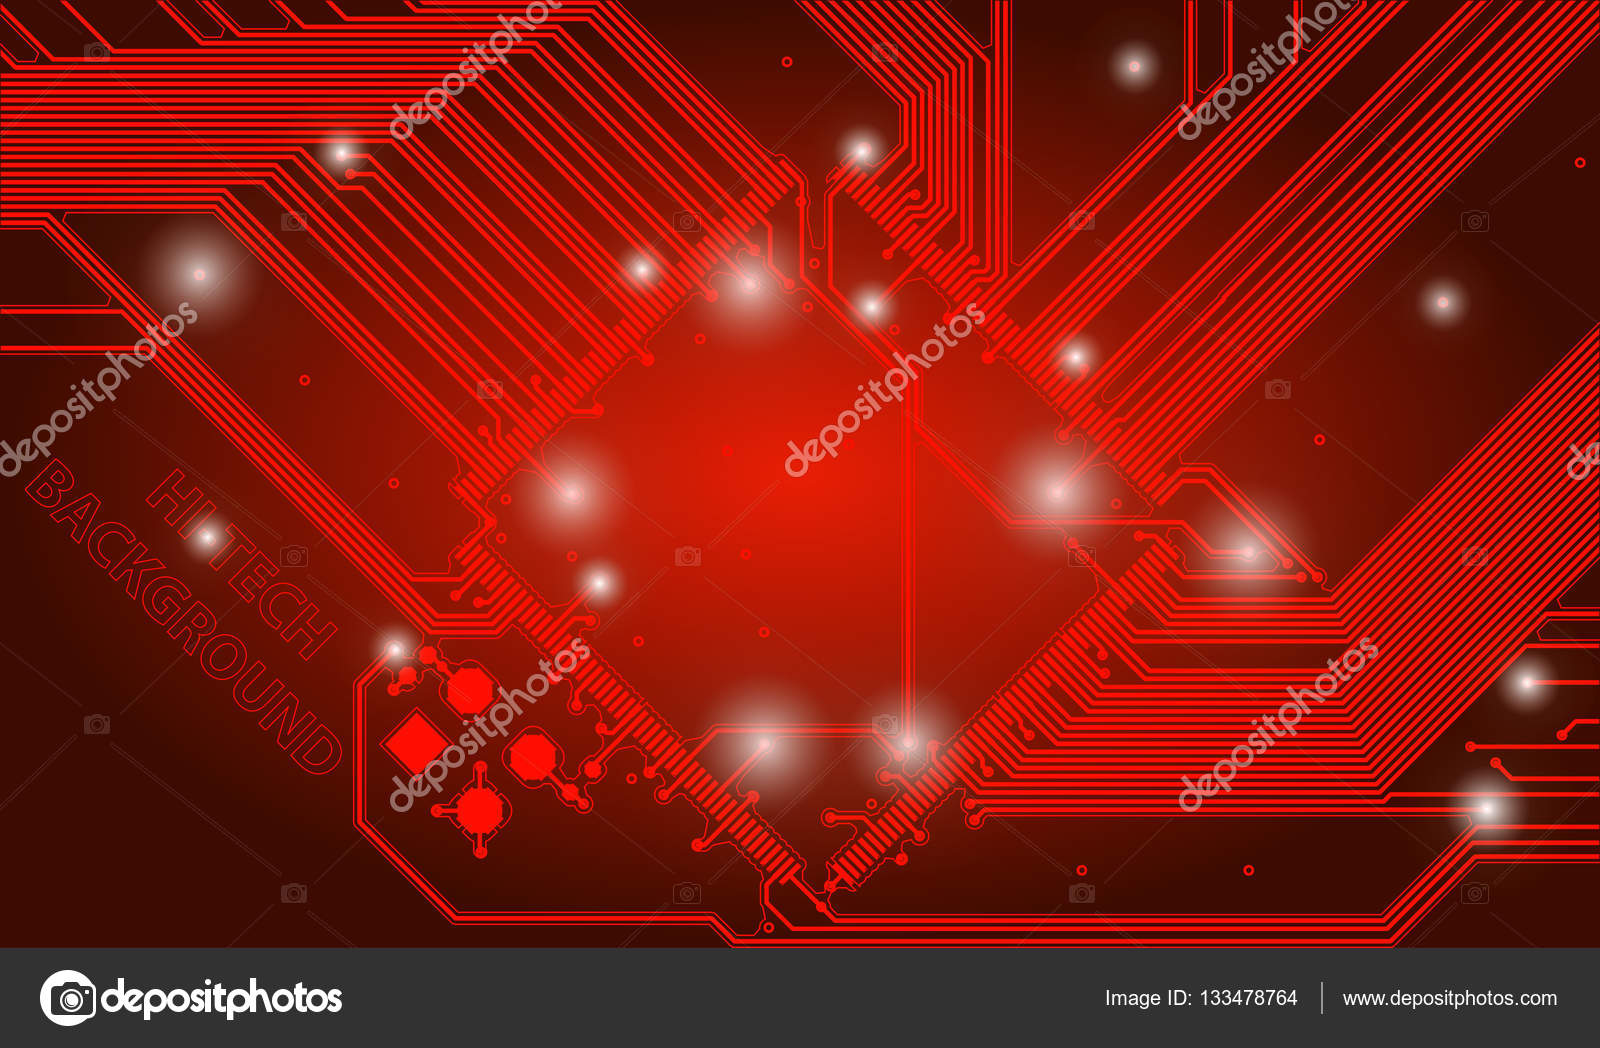 Abstract High Tech Red Background With A Circuit Board Texture  Vector Technological